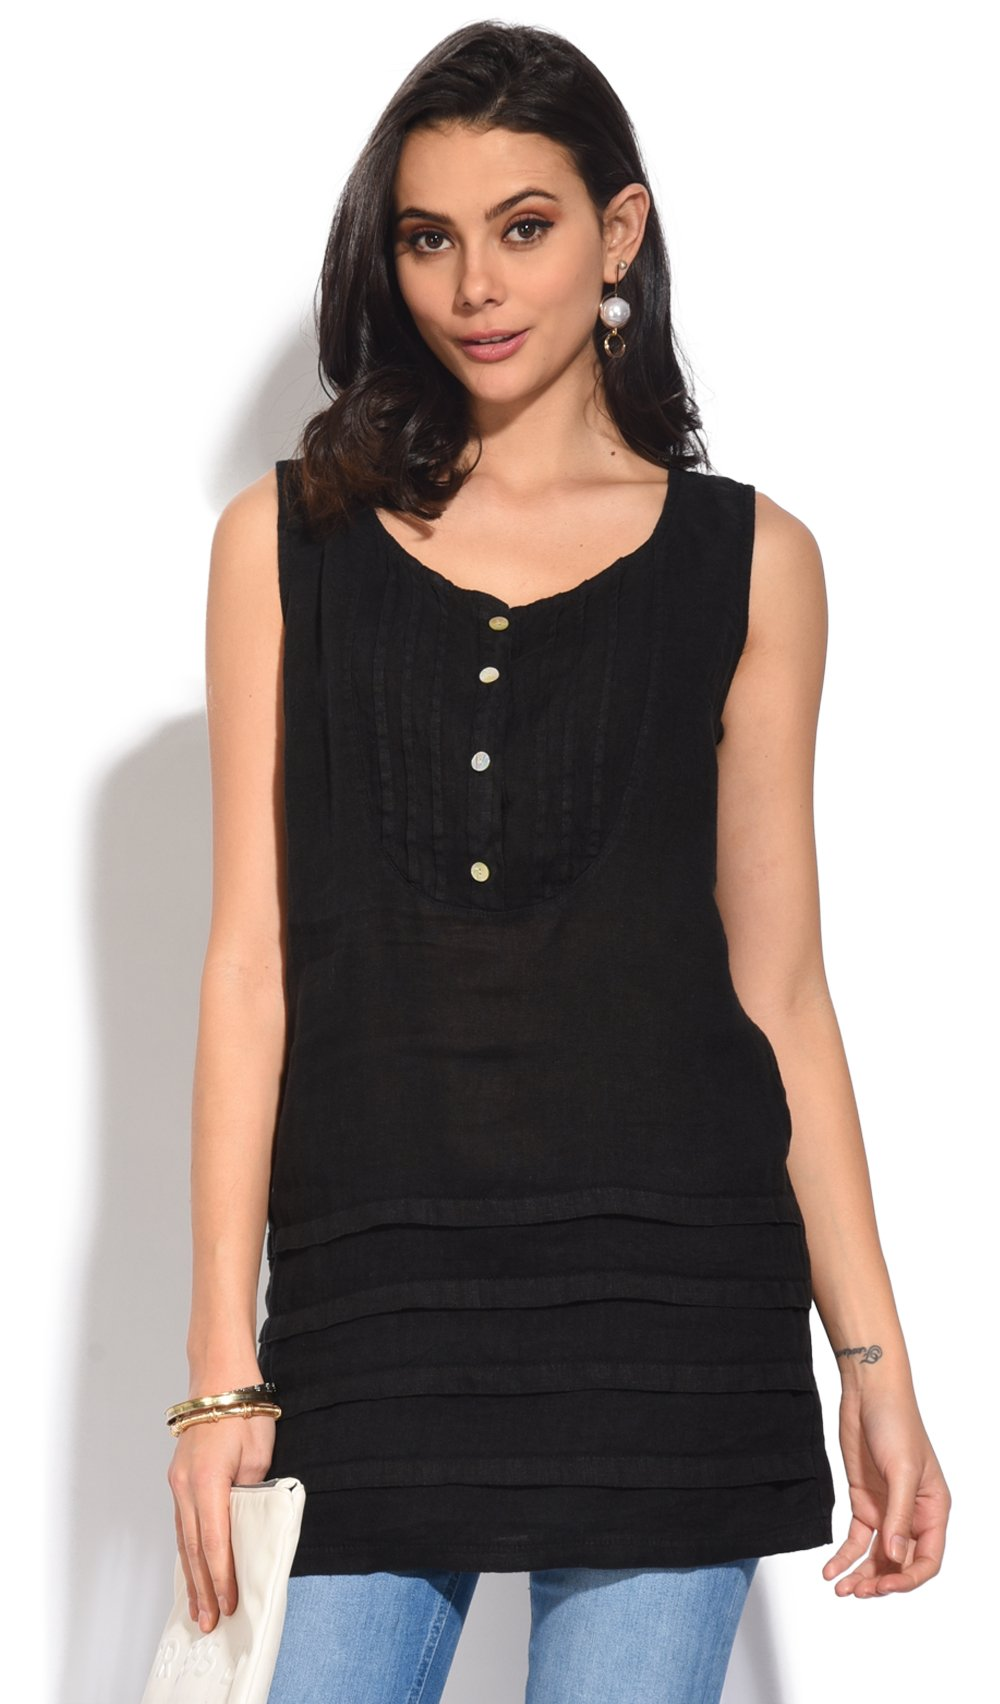 ROUND COLLAR SLEEVELESS TUNIC WITH FRONT PLEATS